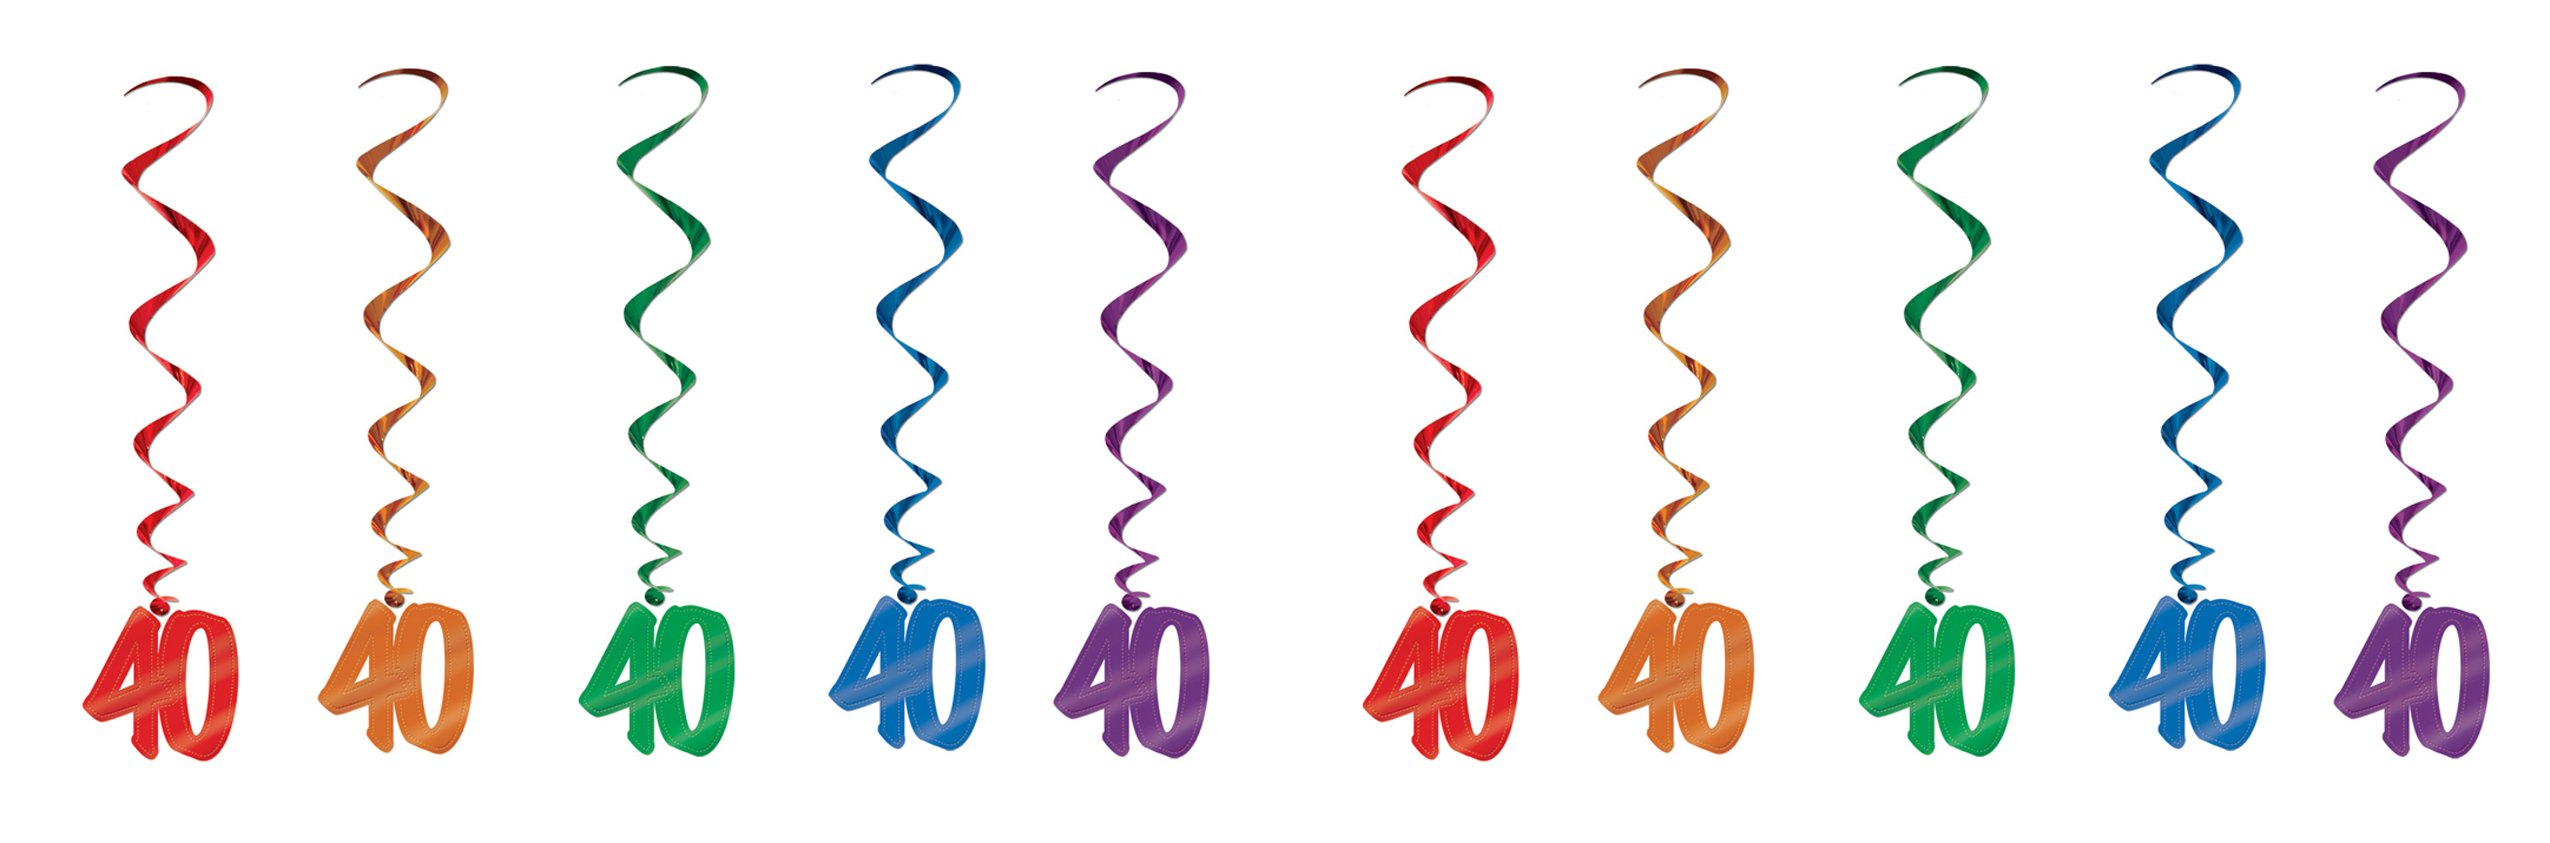 Beistle S57551-40AZ2 40 Whirls 10 Piece, Multicolored by Beistle